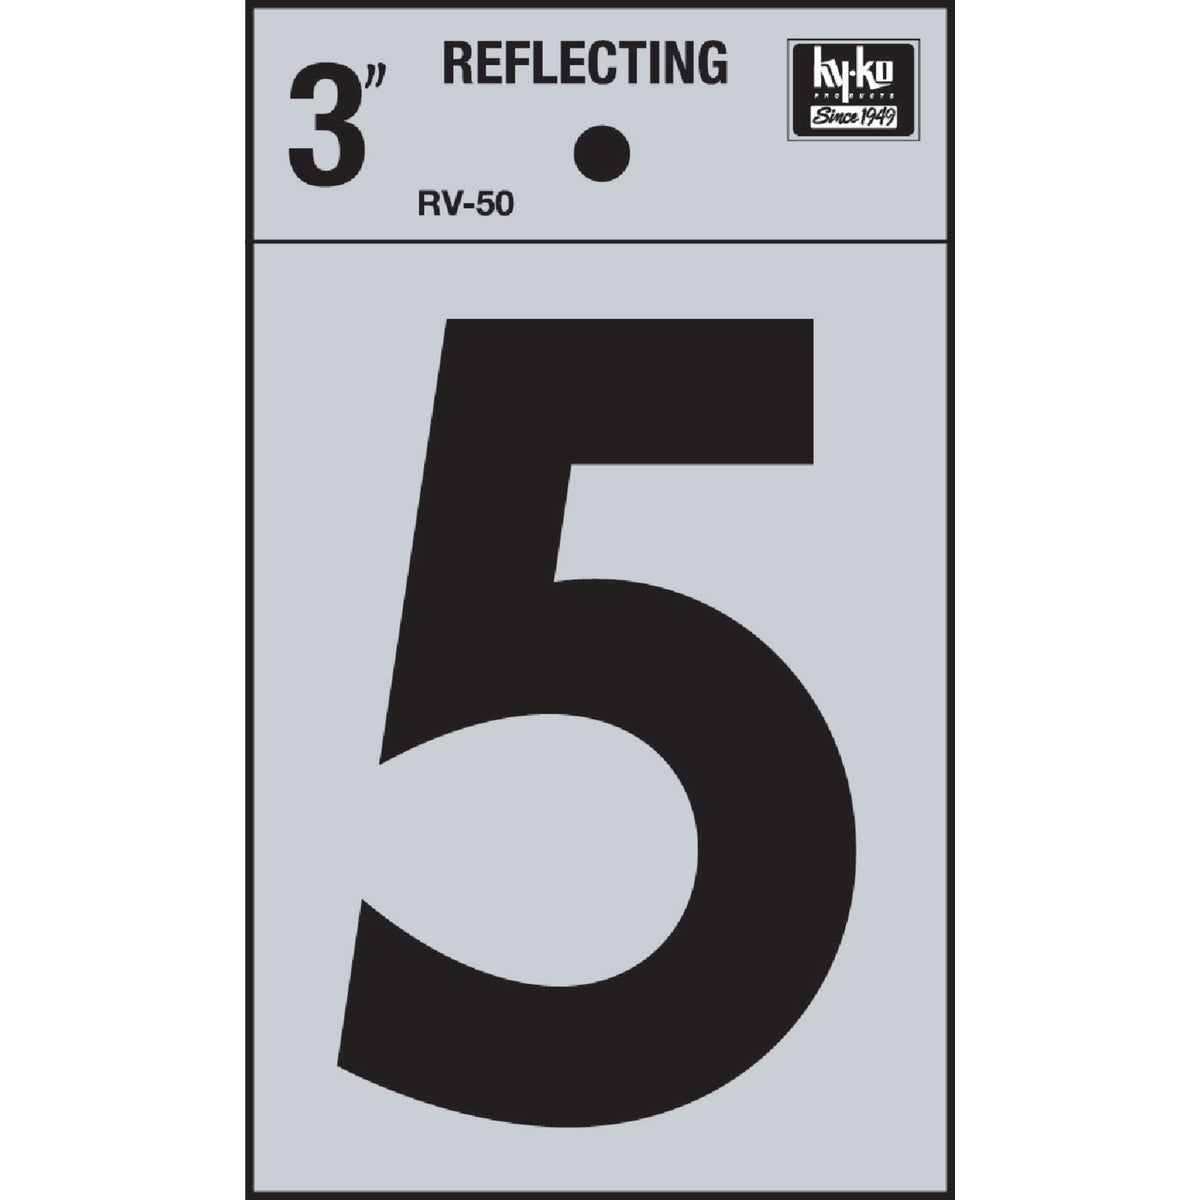 "3"" REFLECT NUMBER 5 - RV-50-5 by Hy Ko Prods Co"